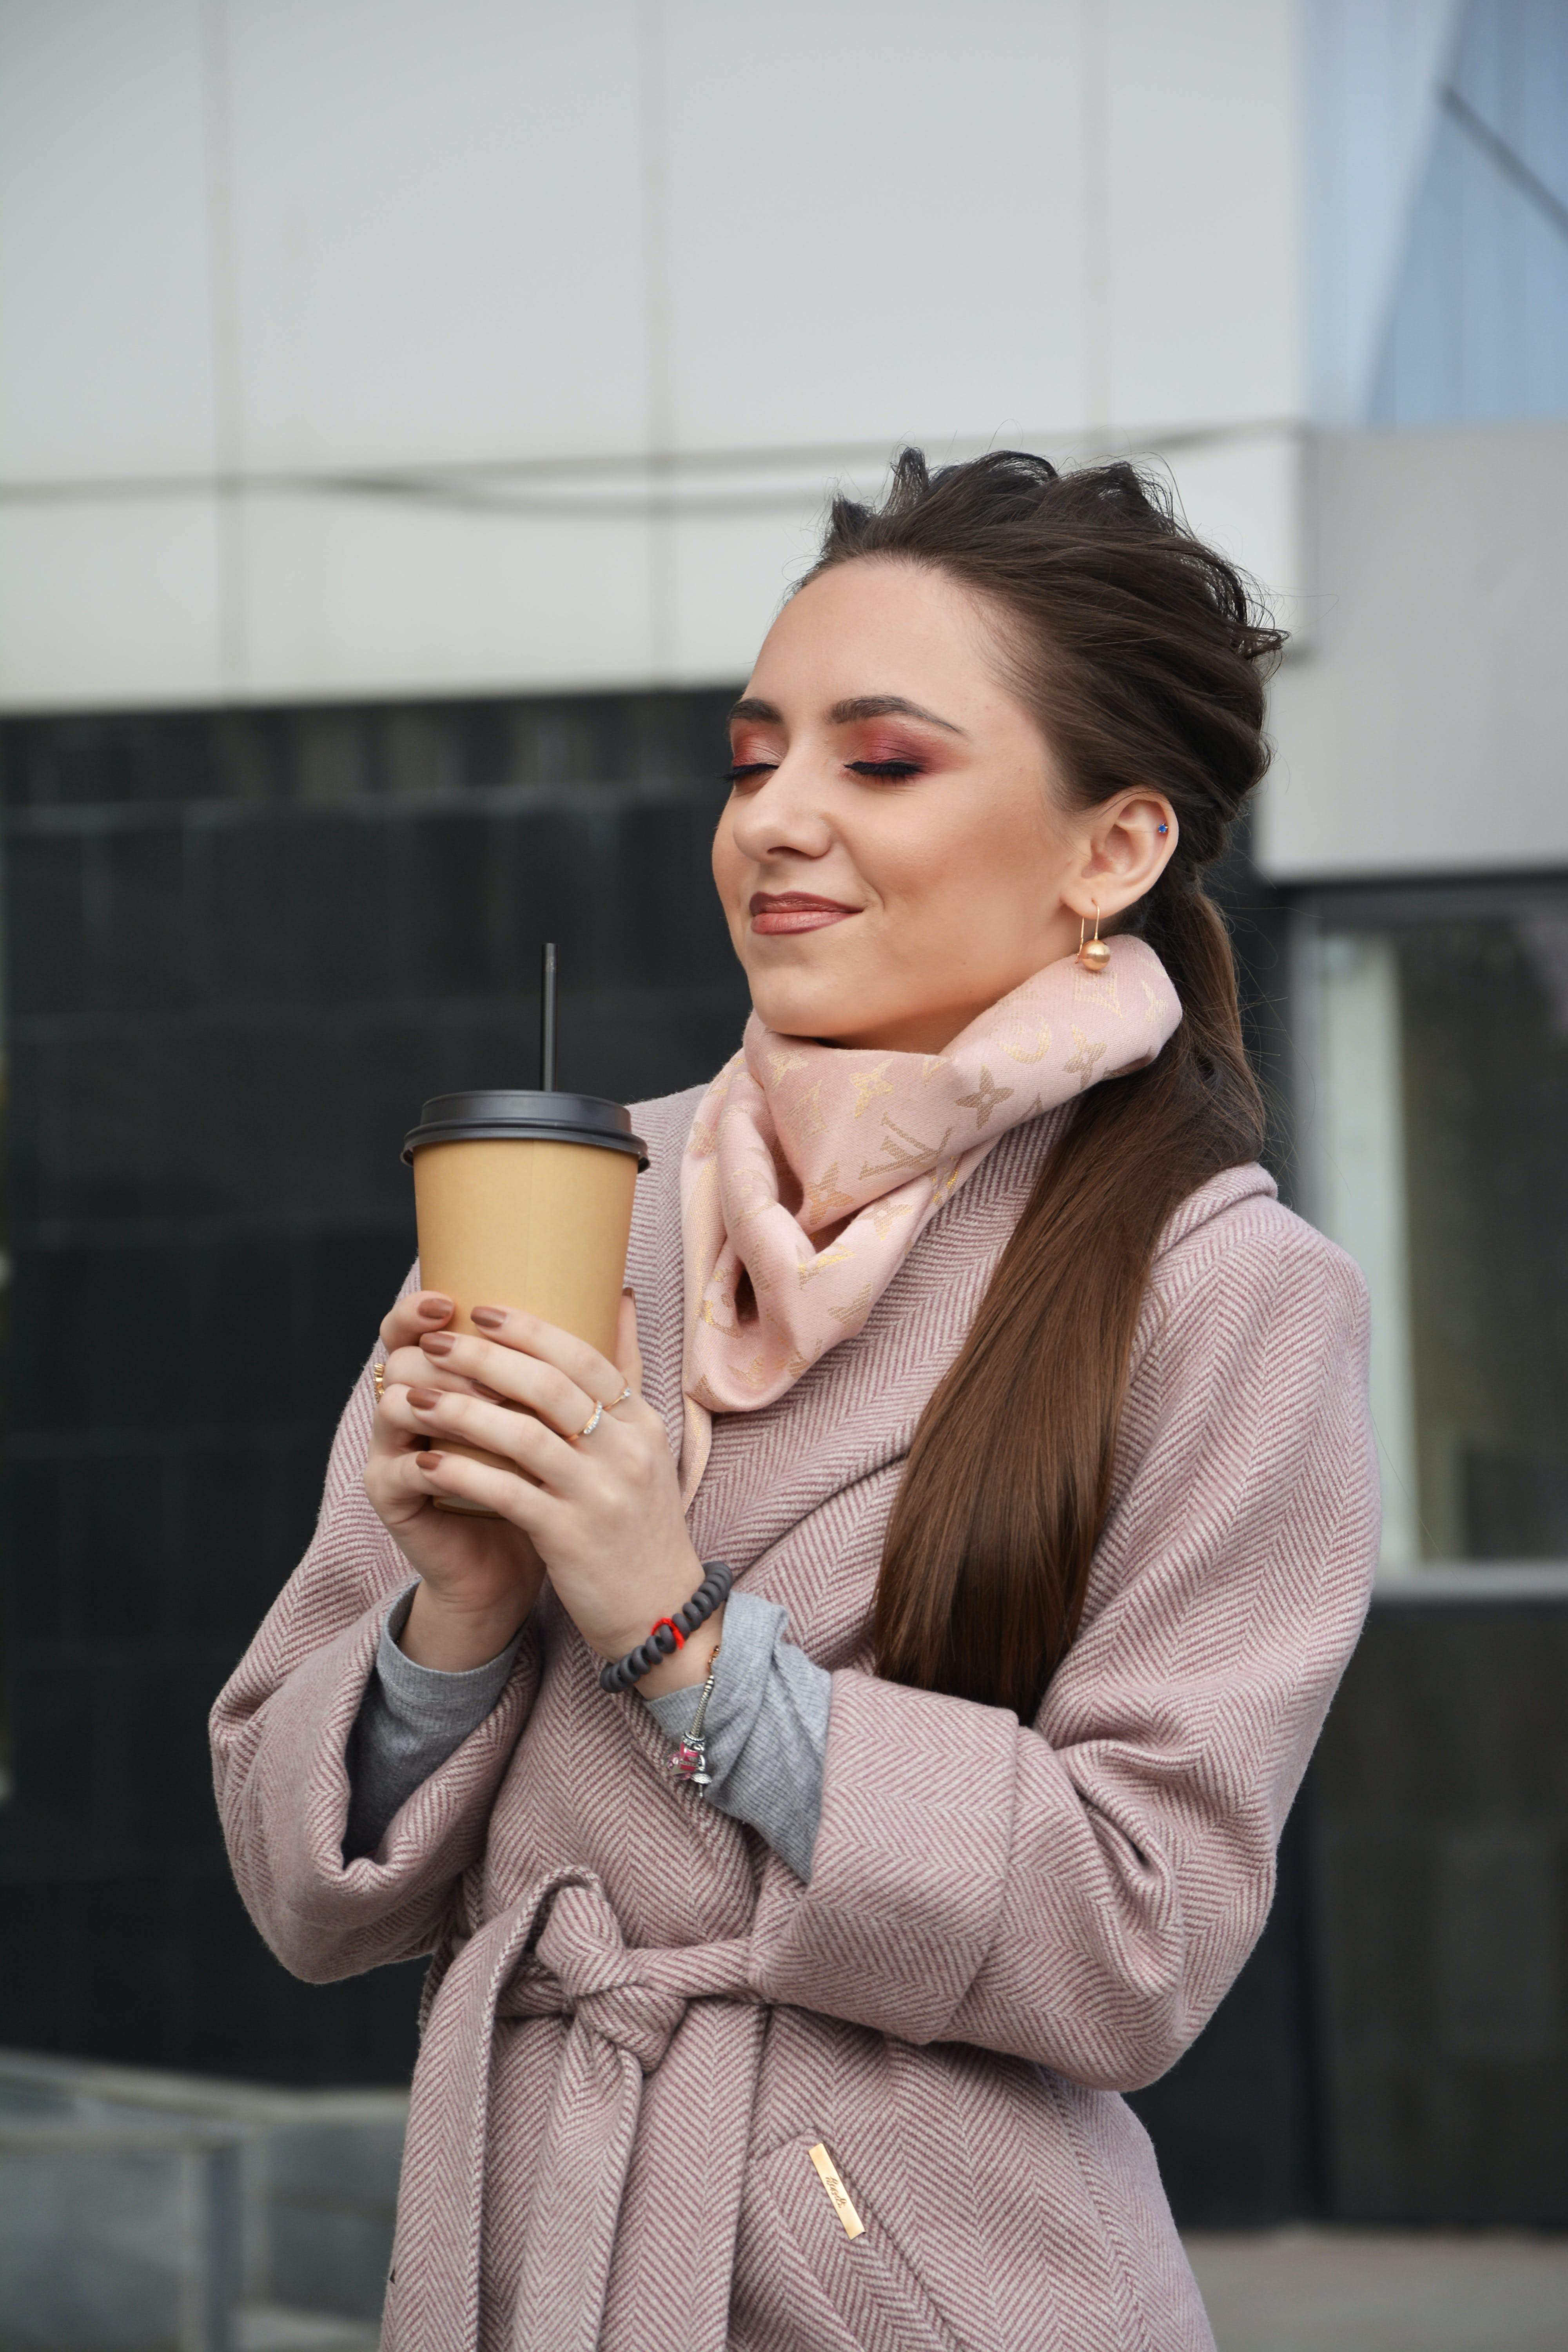 Photo of Woman With Her Eyes Closed Standing Holding a Plastic To Go Cup